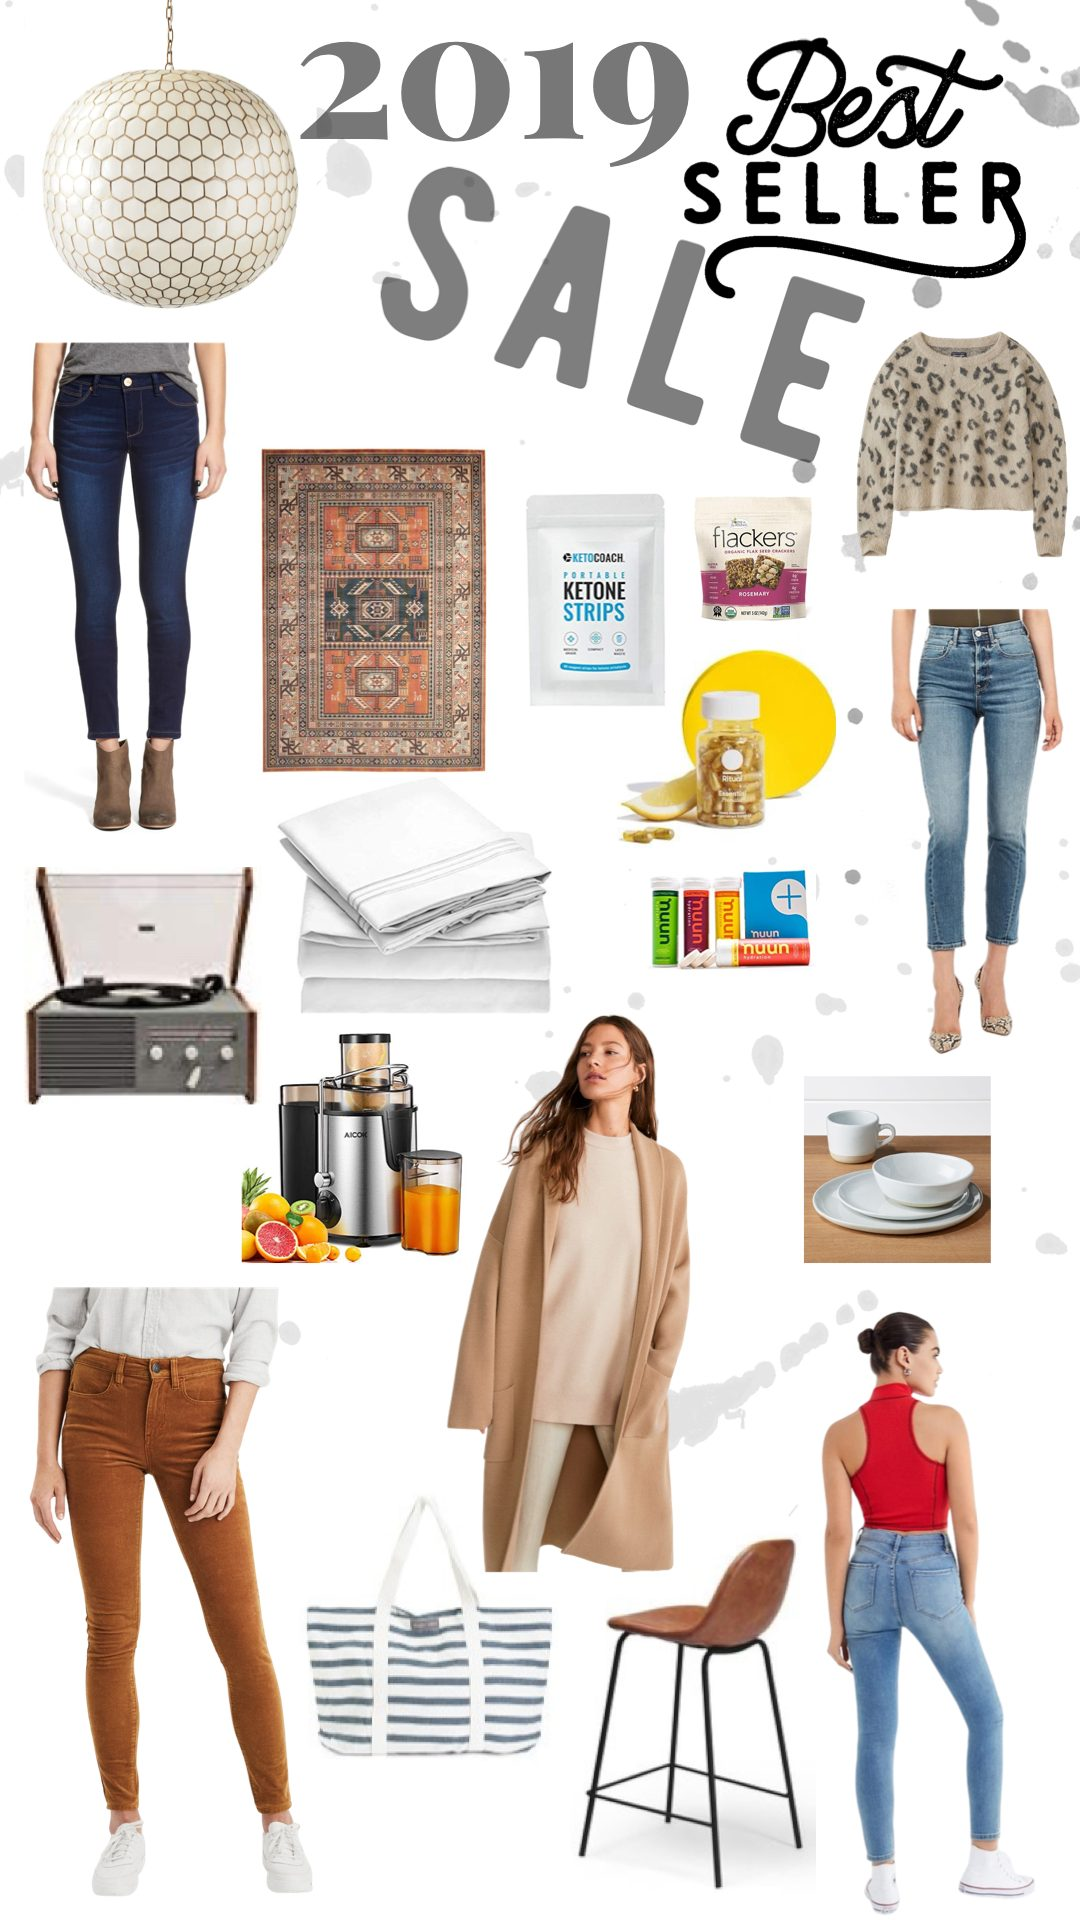 2019 BEST SELLER PRODUCTS by popular San Francisco life and style blog, Just Add Glam: collage image of Levi's Mile High Super Skinny Jeans, bed sheet set, AICOK CENTRIFUGAL JUICER, brushed leopard sweater, record player, 4 piece dish set, honeycomb pendant light, area rug, Lafayette barstool, Ritual vitamins, 1822 Denim butter skinny jeans, high waisted corduroy jegging, Ketone testing strips, Nuun hydration tablets, and Flackers flax seed crackers.